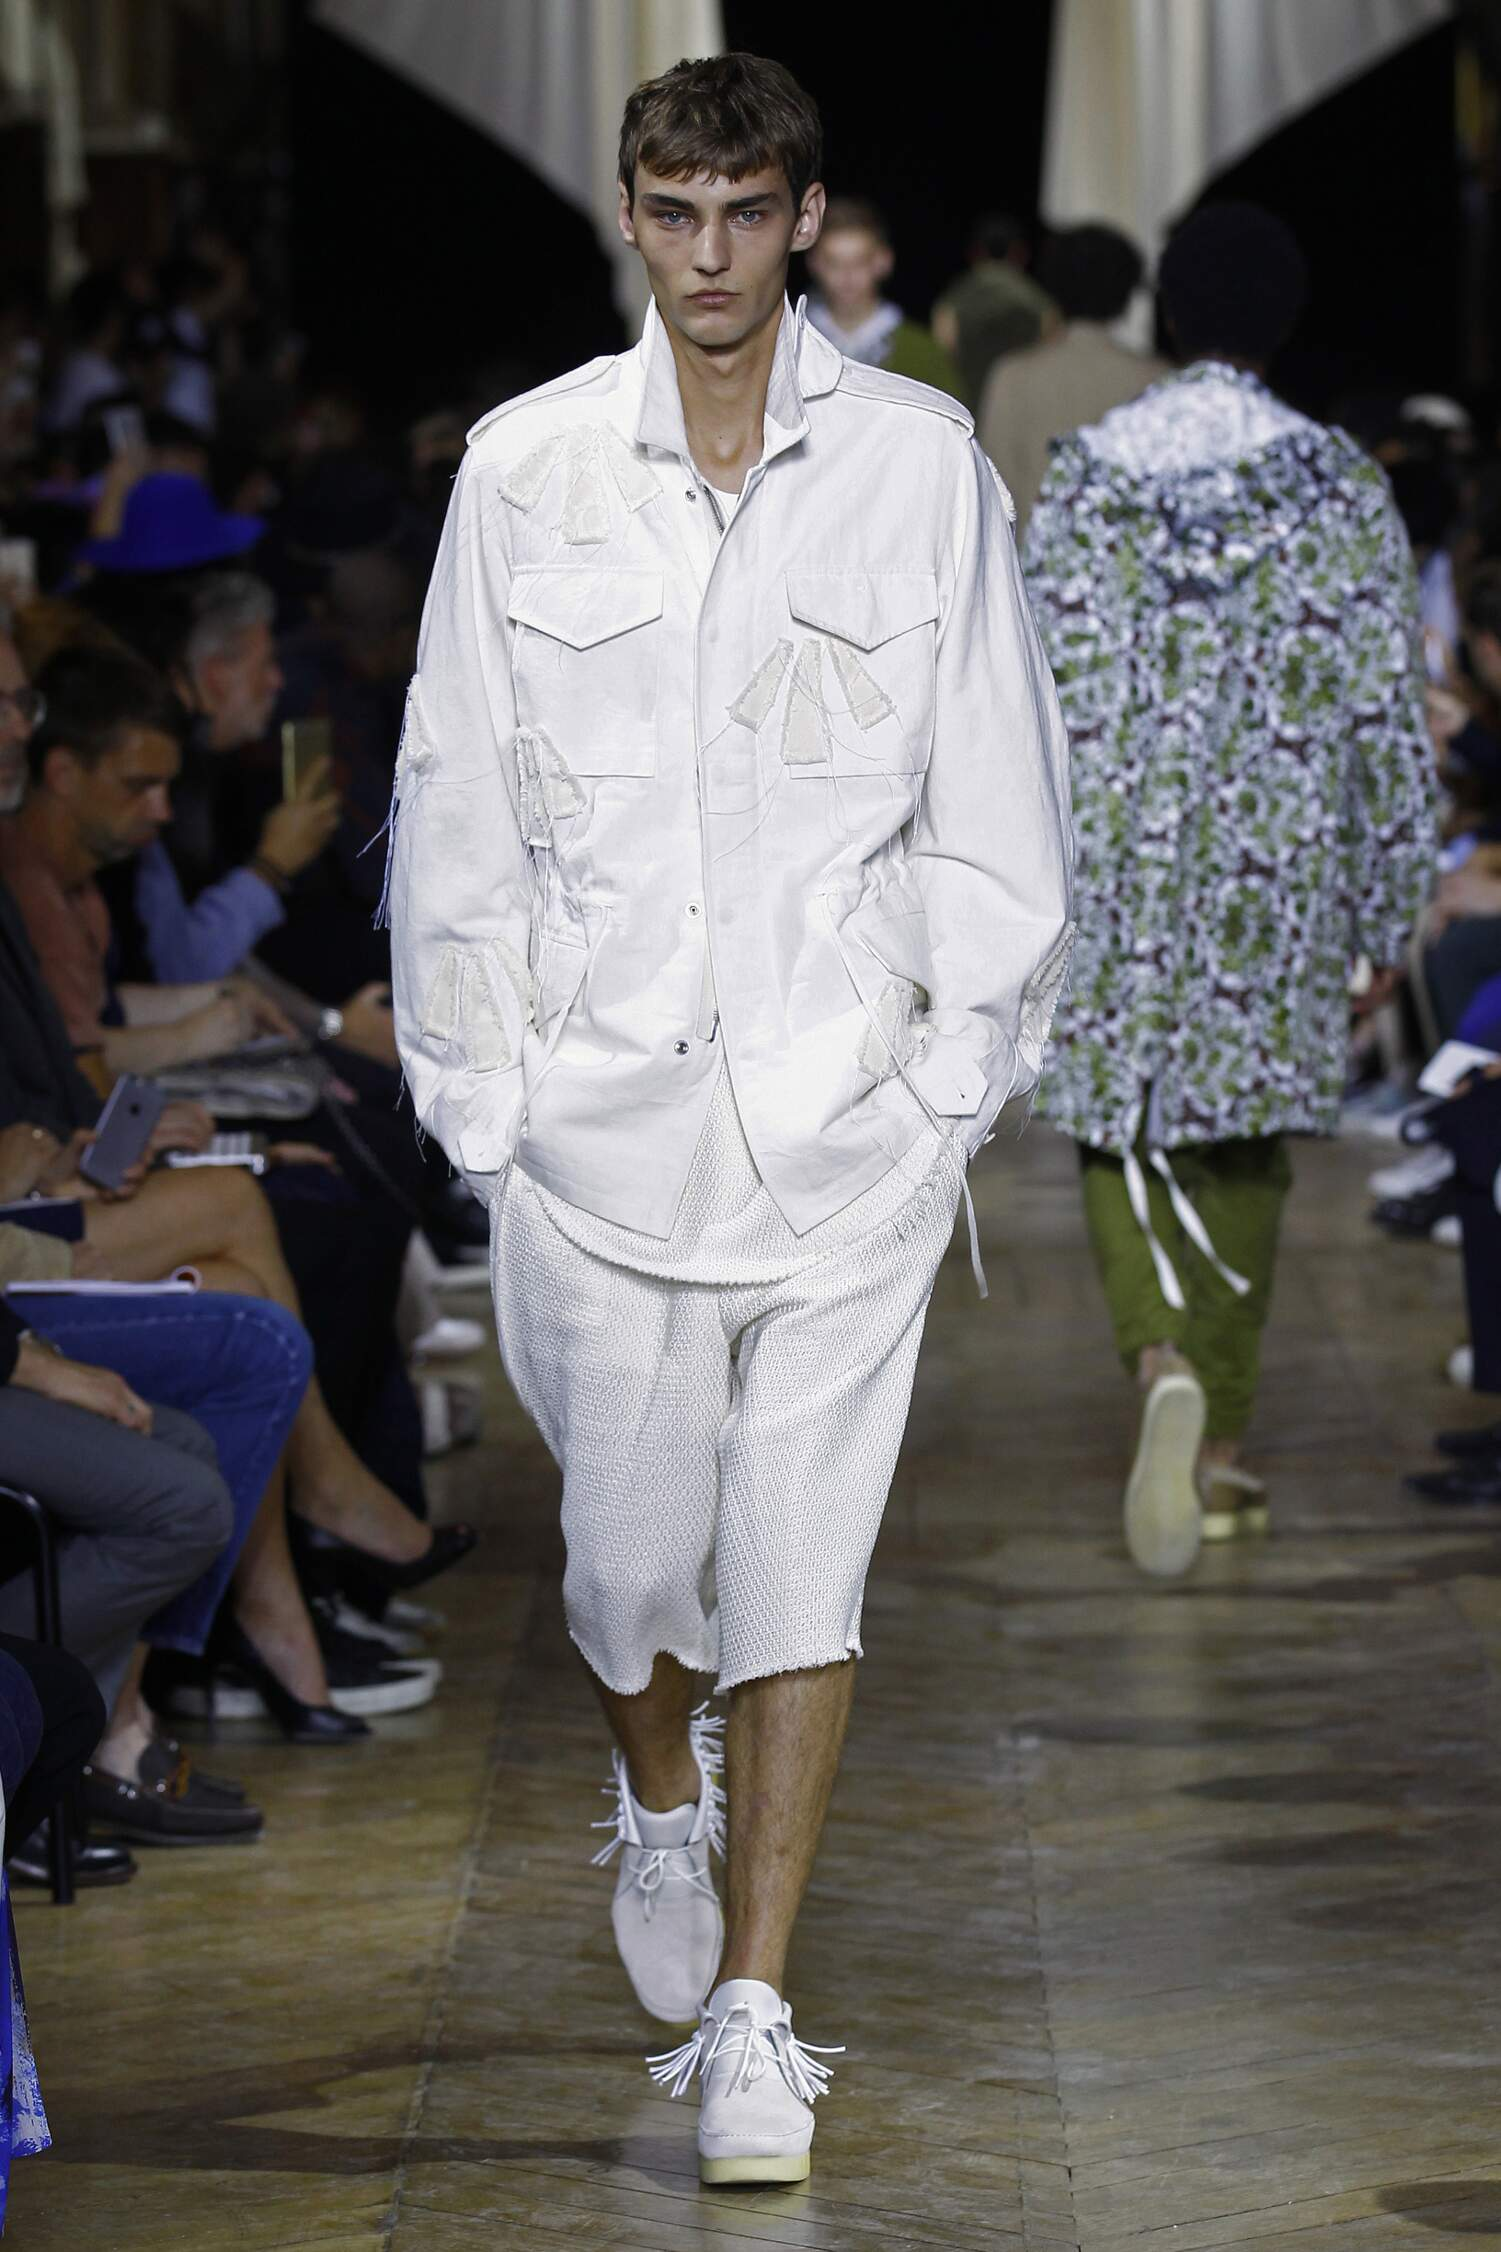 Spring Phillip Lim Collection Fashion Men Model